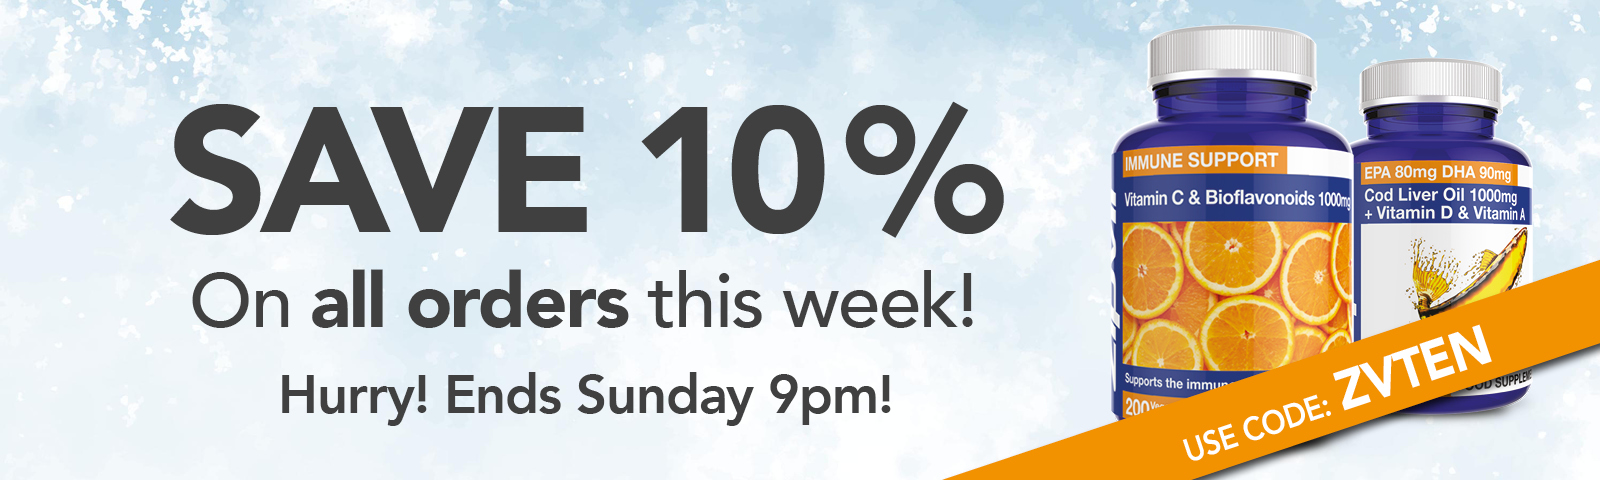 Save an extra 10% this week